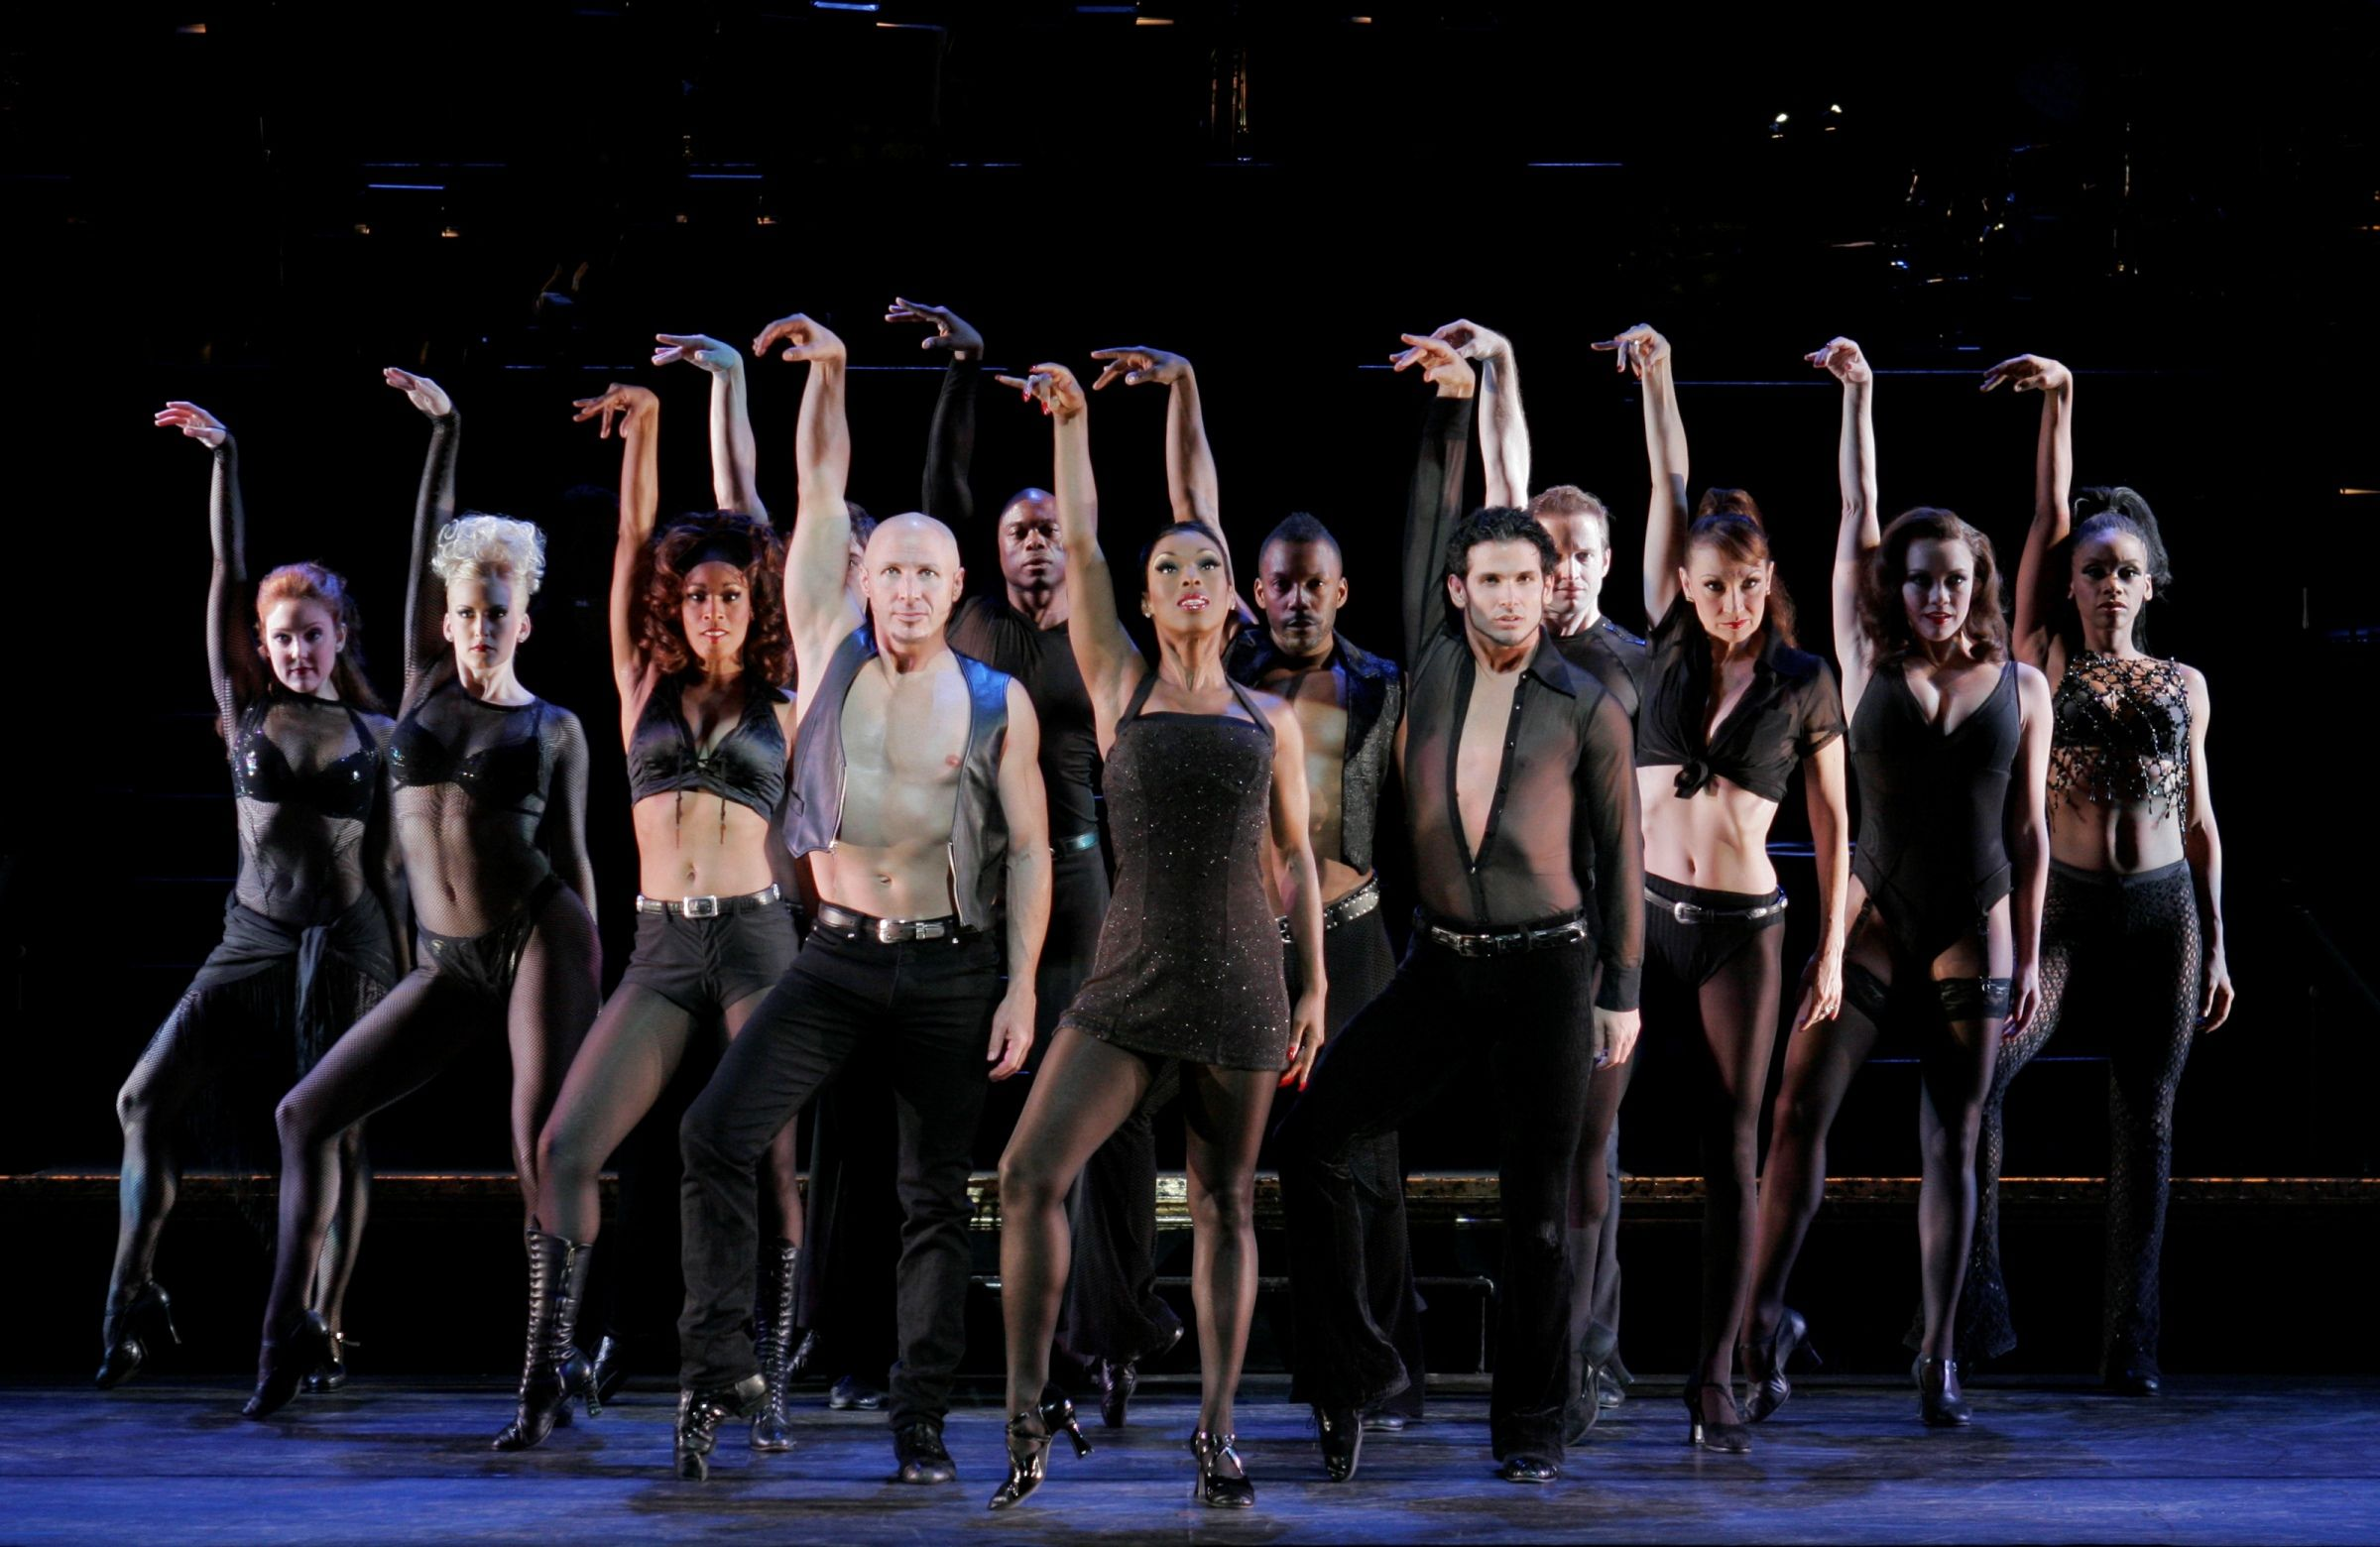 chicago the musical was so terrible on broadway stick to